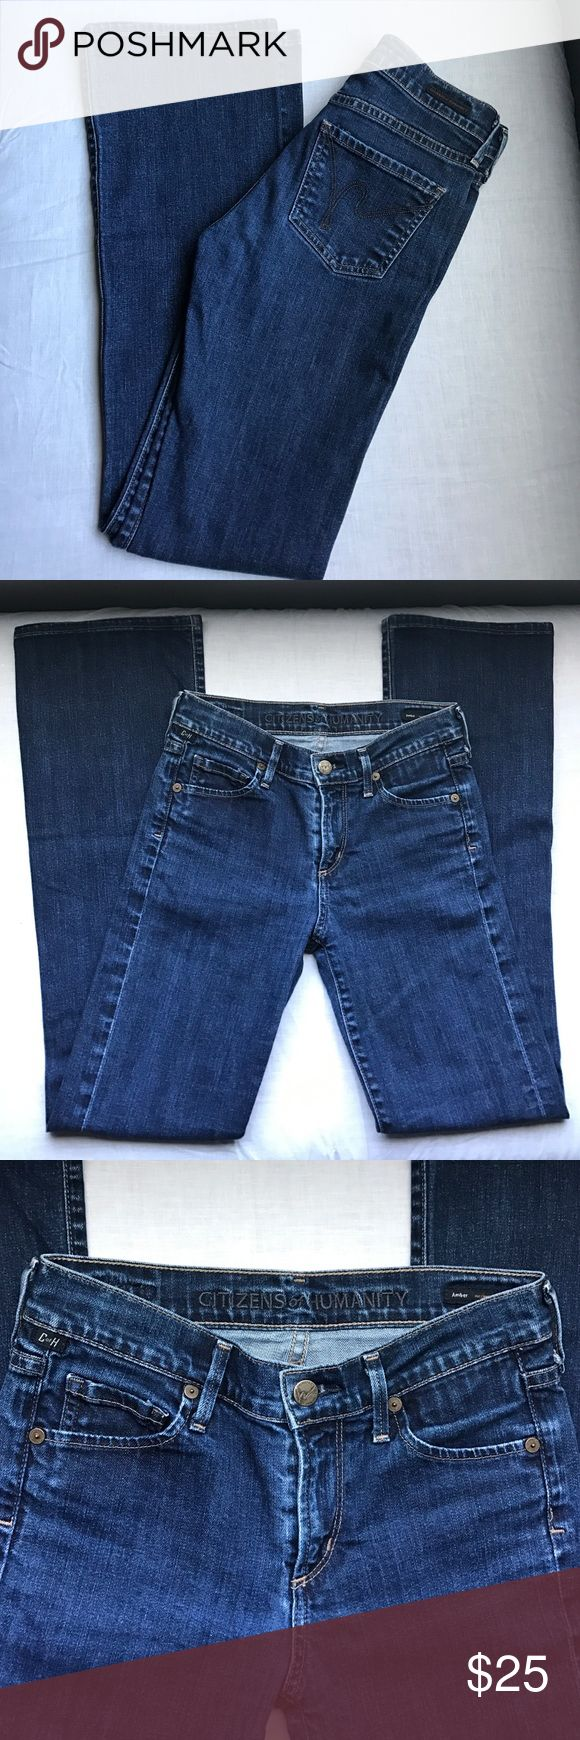 🦋 SALE! Citizens of Humanity jeans Citizens of Humanity jeans, style Amber Medium Rise Bootcut. Like new condition, no rips or stains. Citizens of Humanity Jeans